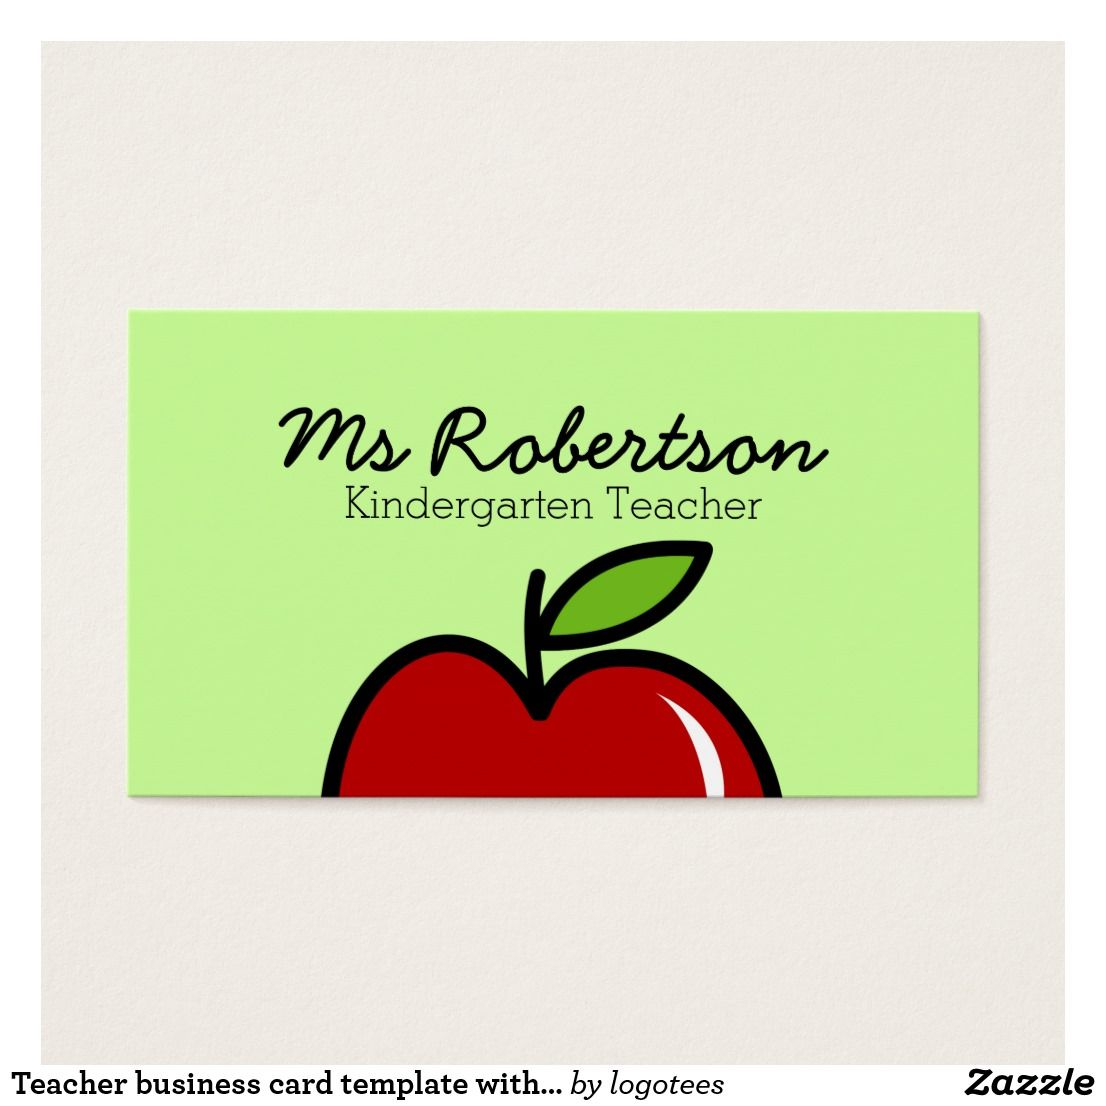 Teacher business card template with red apple cute logo design for teacher business card template with red apple cute logo design for kindergarten pre school cheaphphosting Image collections